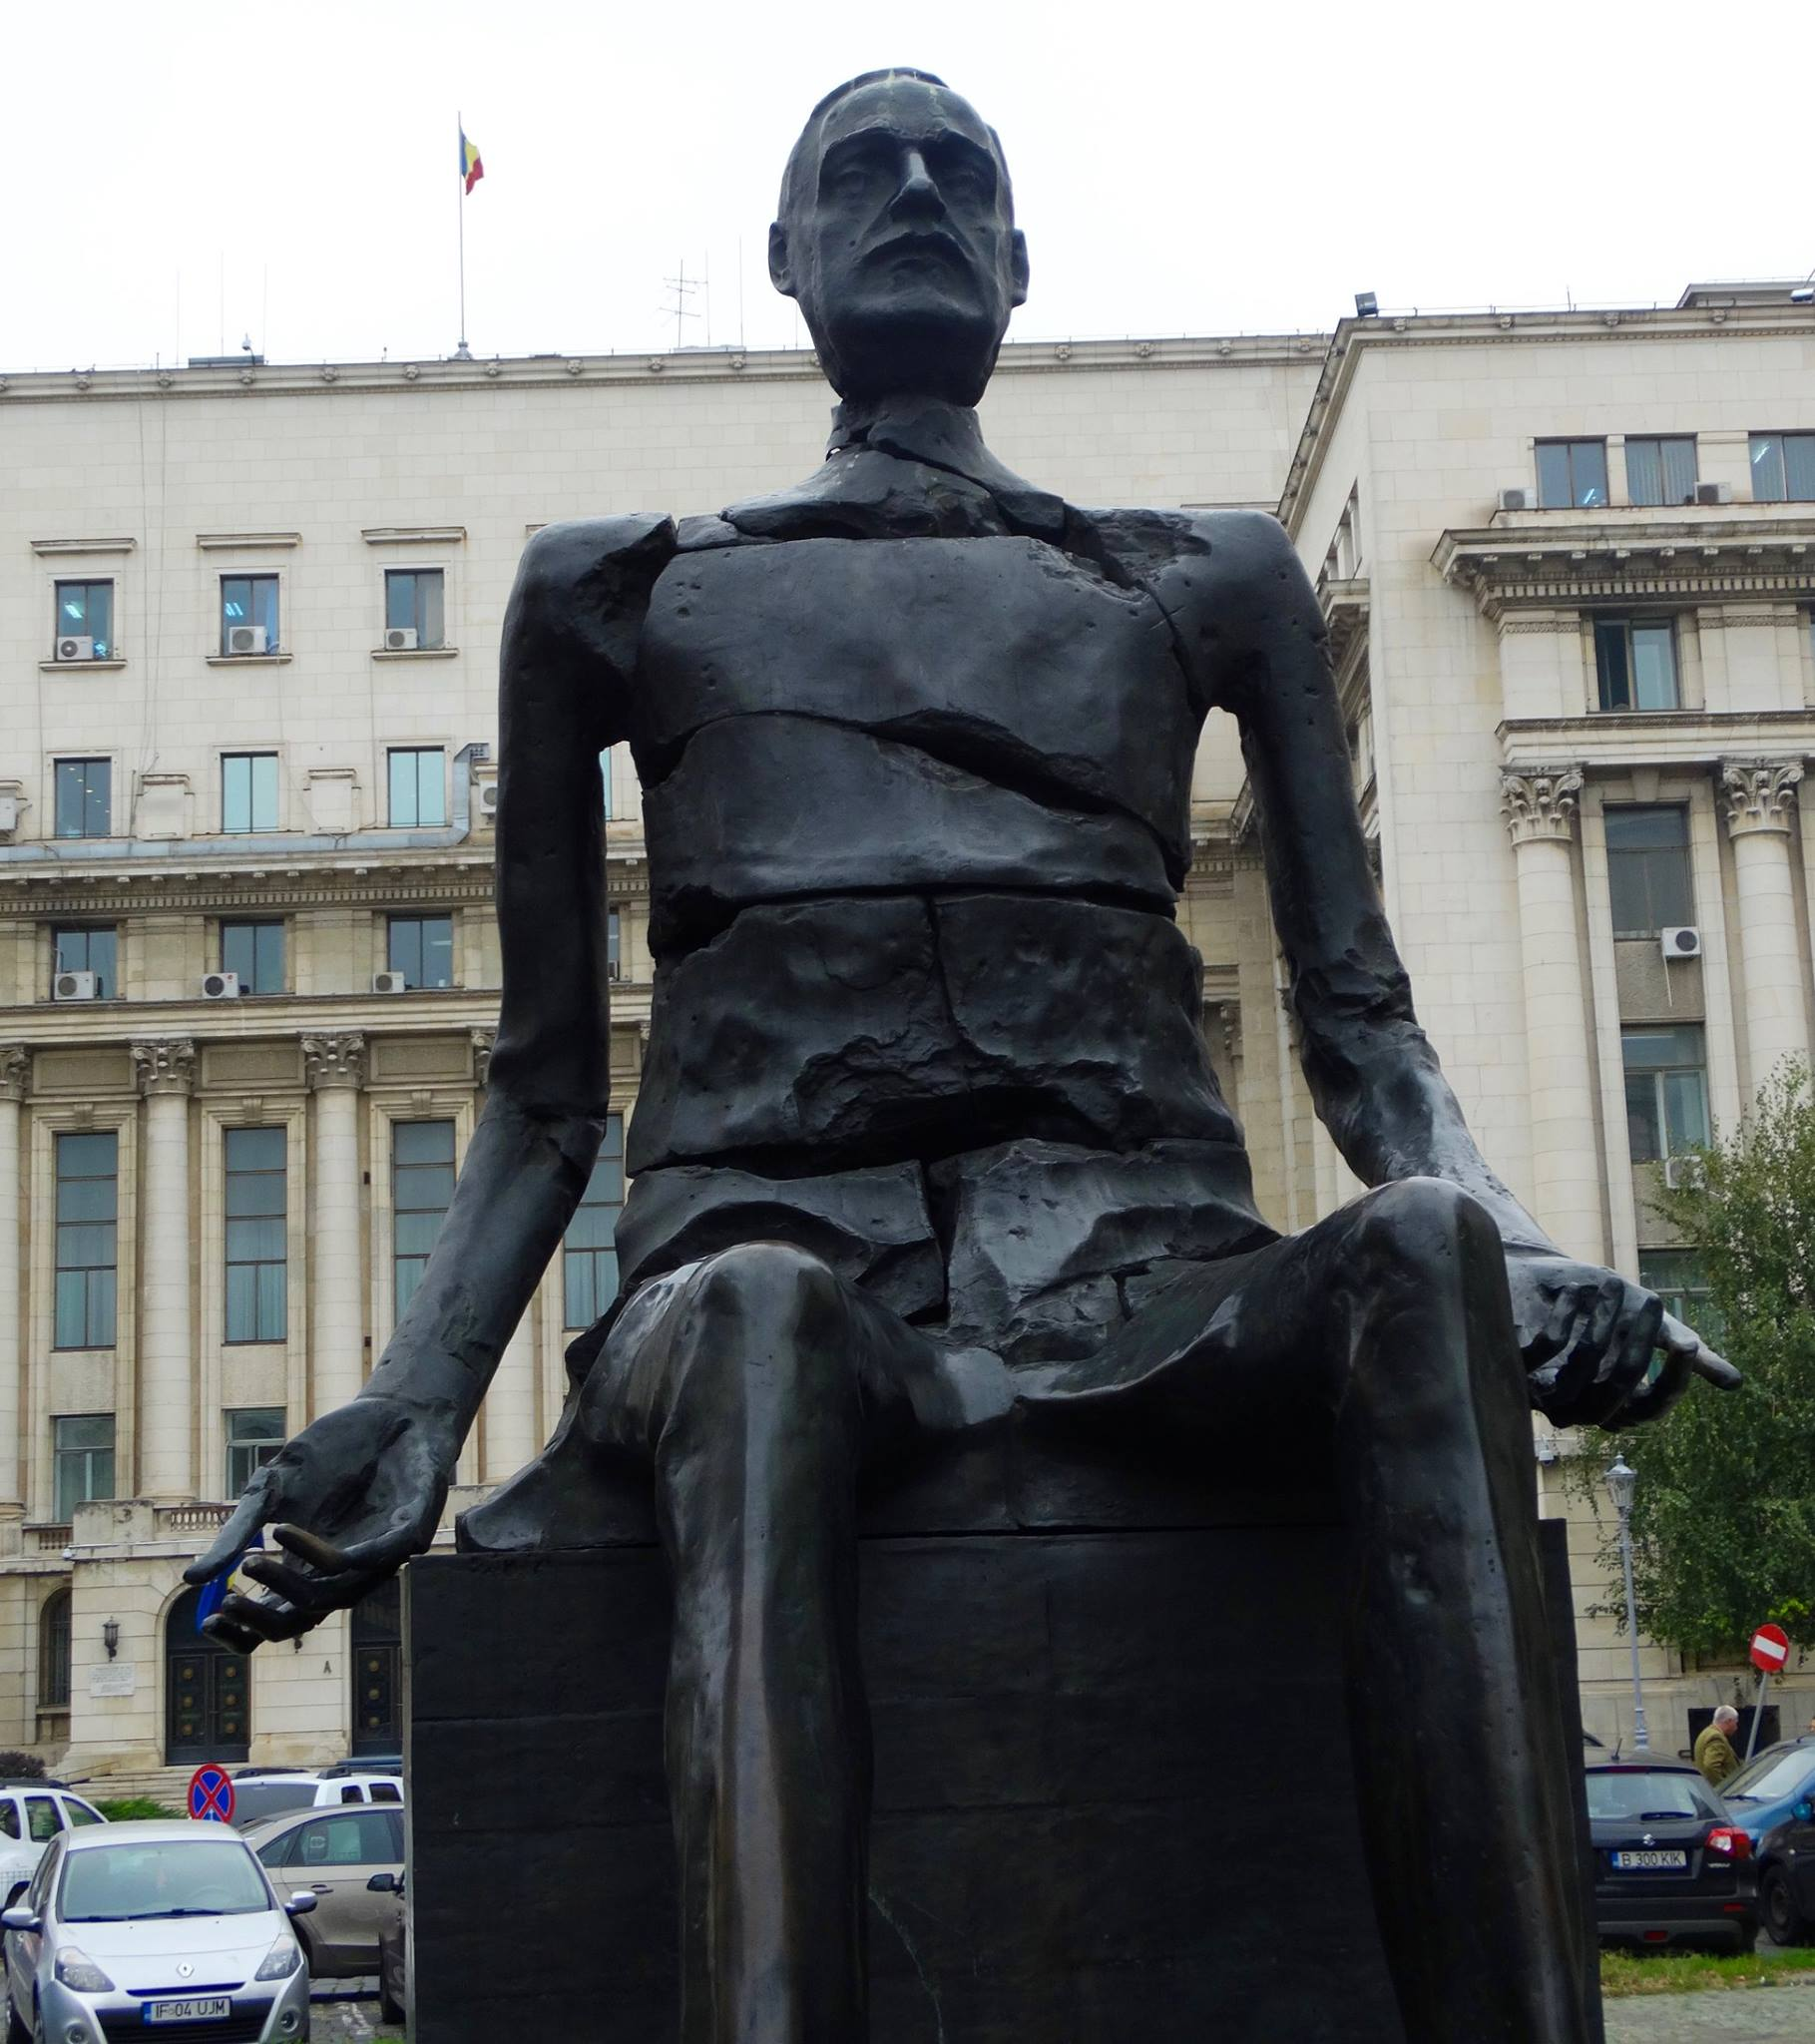 Statue of Luliu Maniu, an anti-communist politician in Romania, who stood for election against the Communist Party in 1946. It would be the last free election Romania would have until 1990.  A year after his loss (in what is commonly thought to have been a rigged election), the communists charged Maniu with treason and arrested him. He was sentenced to life in prison with hard labor, and would die six years later, after being kept in a pitch-black room for two of those years.  The cracks in the statue represent how this man broke himself for his country, and his outstretched arms signify his regret that it still wasn't enough to save it from dictatorship.